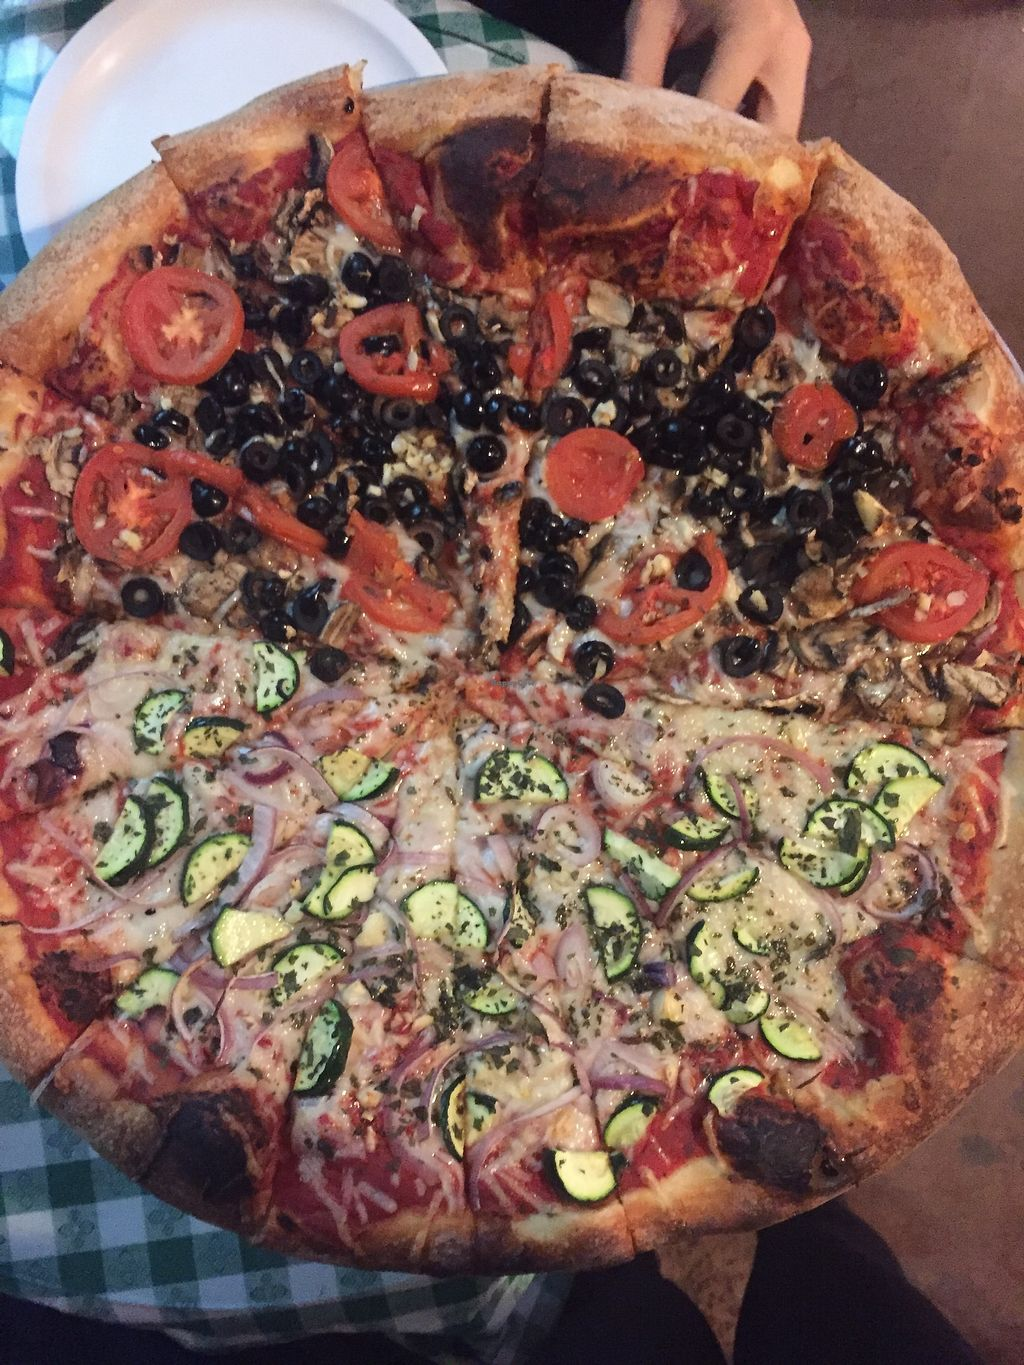 """Photo of Napoli Pizzeria  by <a href=""""/members/profile/TheVeganNarwhal"""">TheVeganNarwhal</a> <br/>Half and half <br/> February 20, 2018  - <a href='/contact/abuse/image/112591/361851'>Report</a>"""